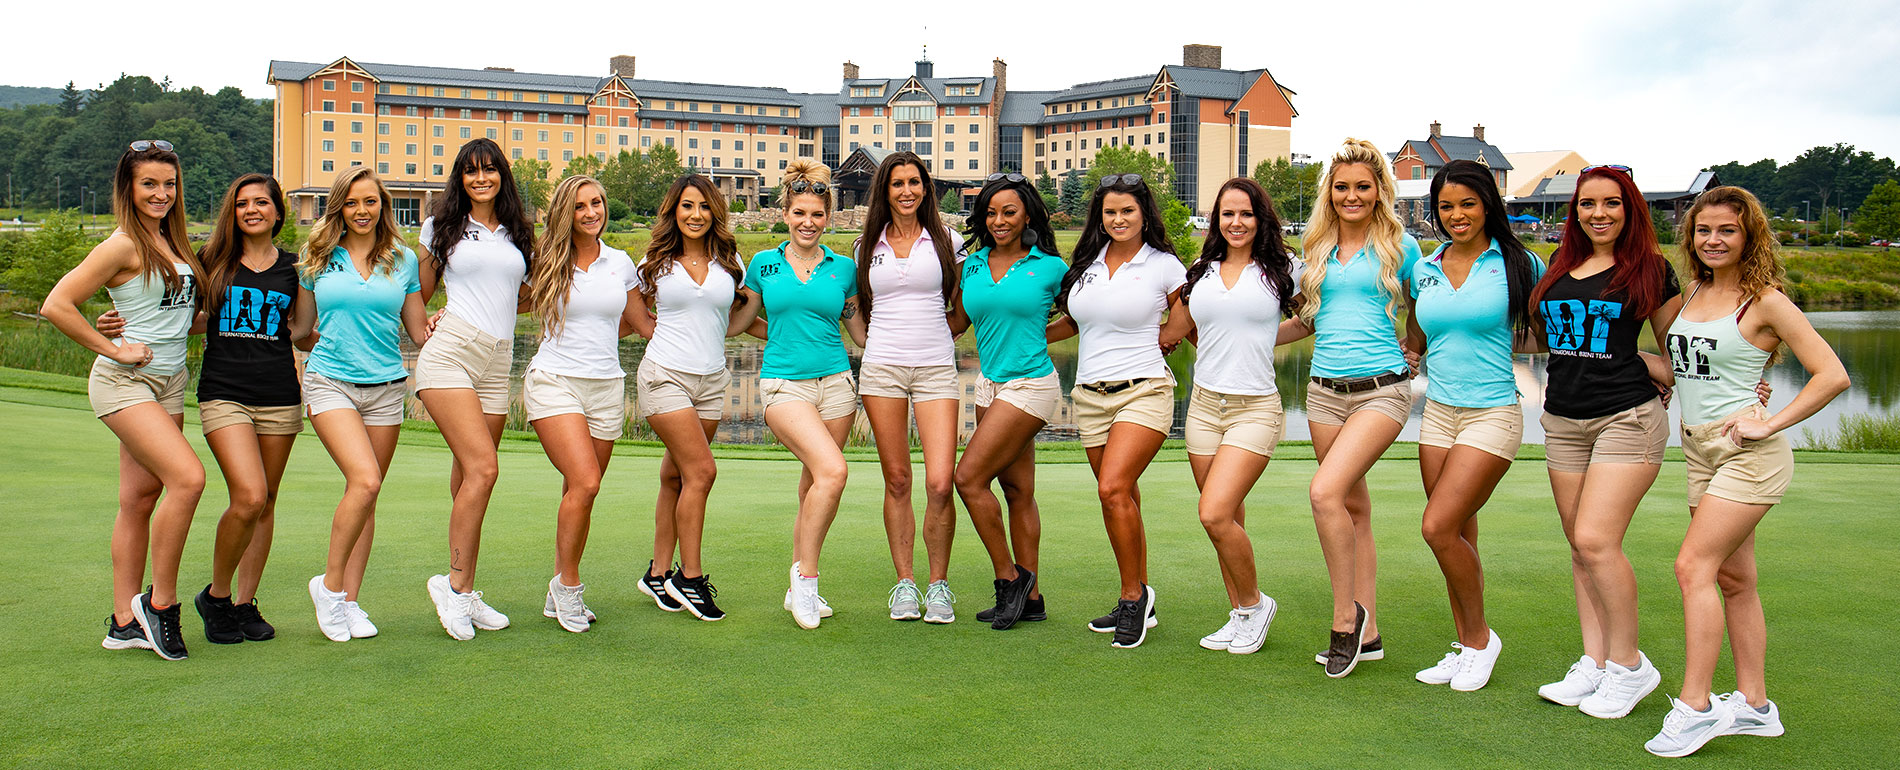 International Bikini Team Golf Tournament - Pocono Golf